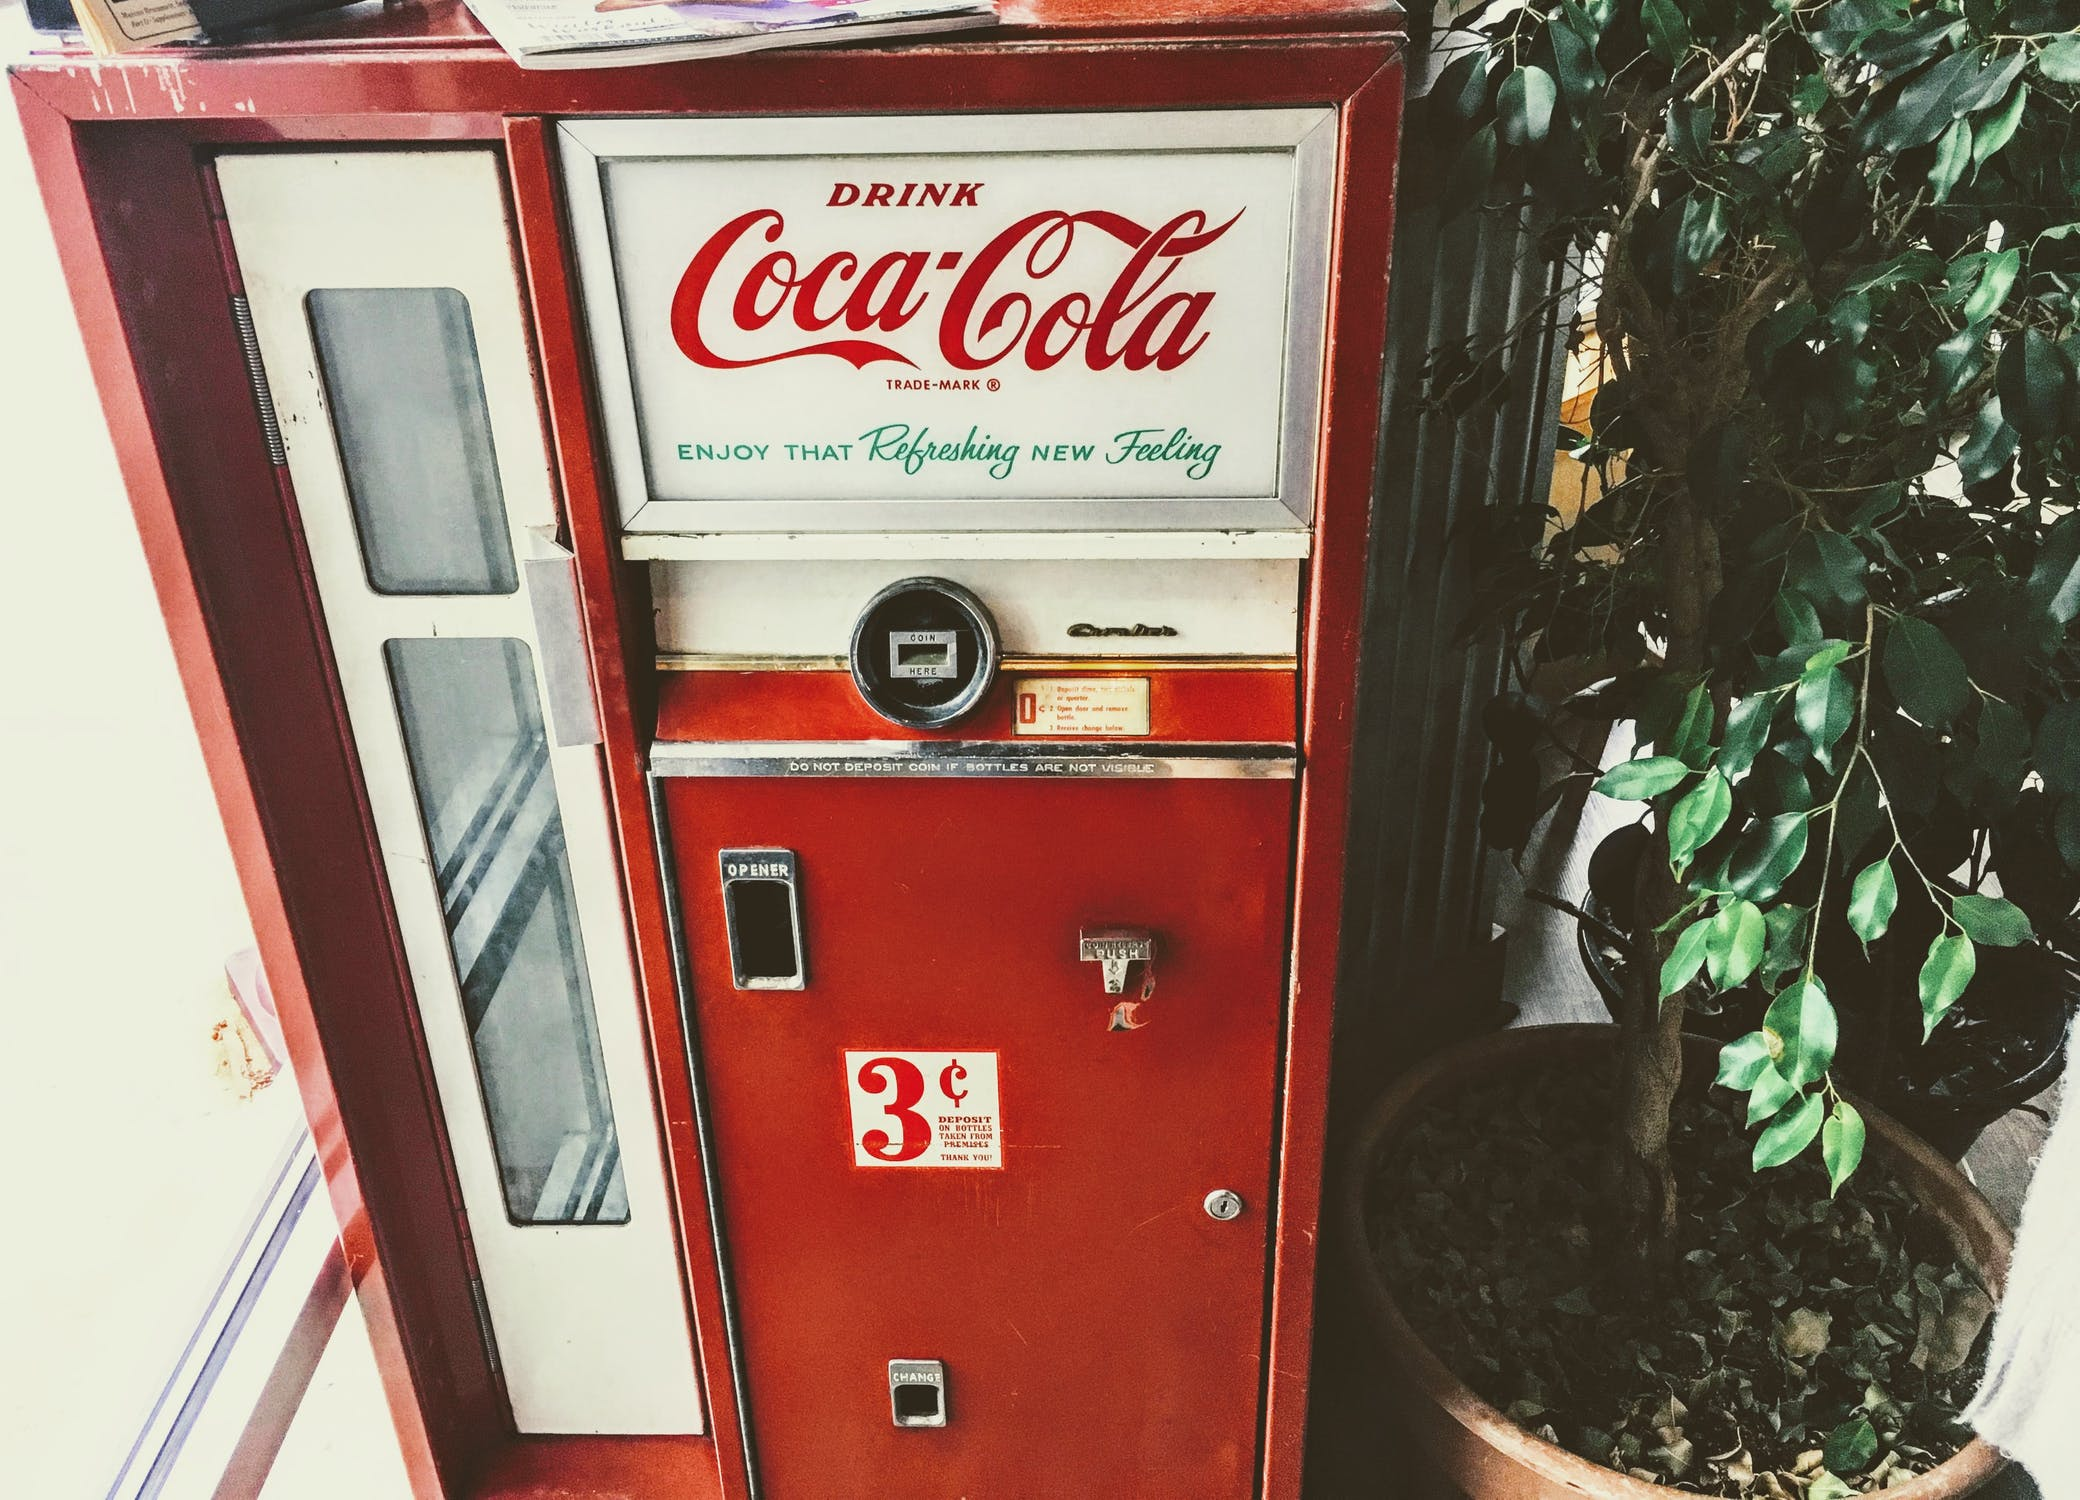 Coke vending machine ARPANET IoT